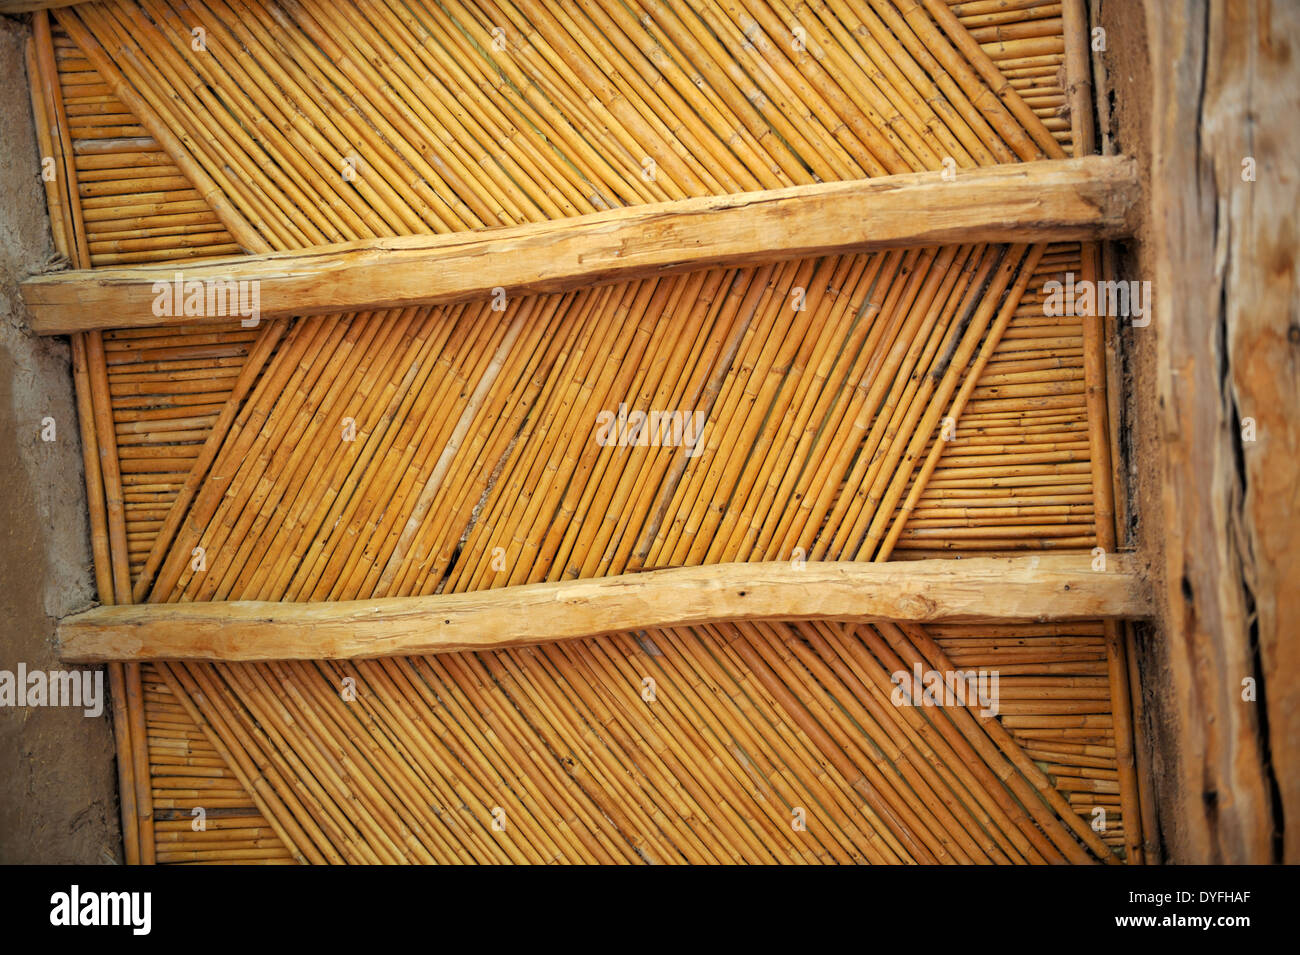 Bamboo Ceiling With Wood Beams Holds Up An Adobe Flat Roof With